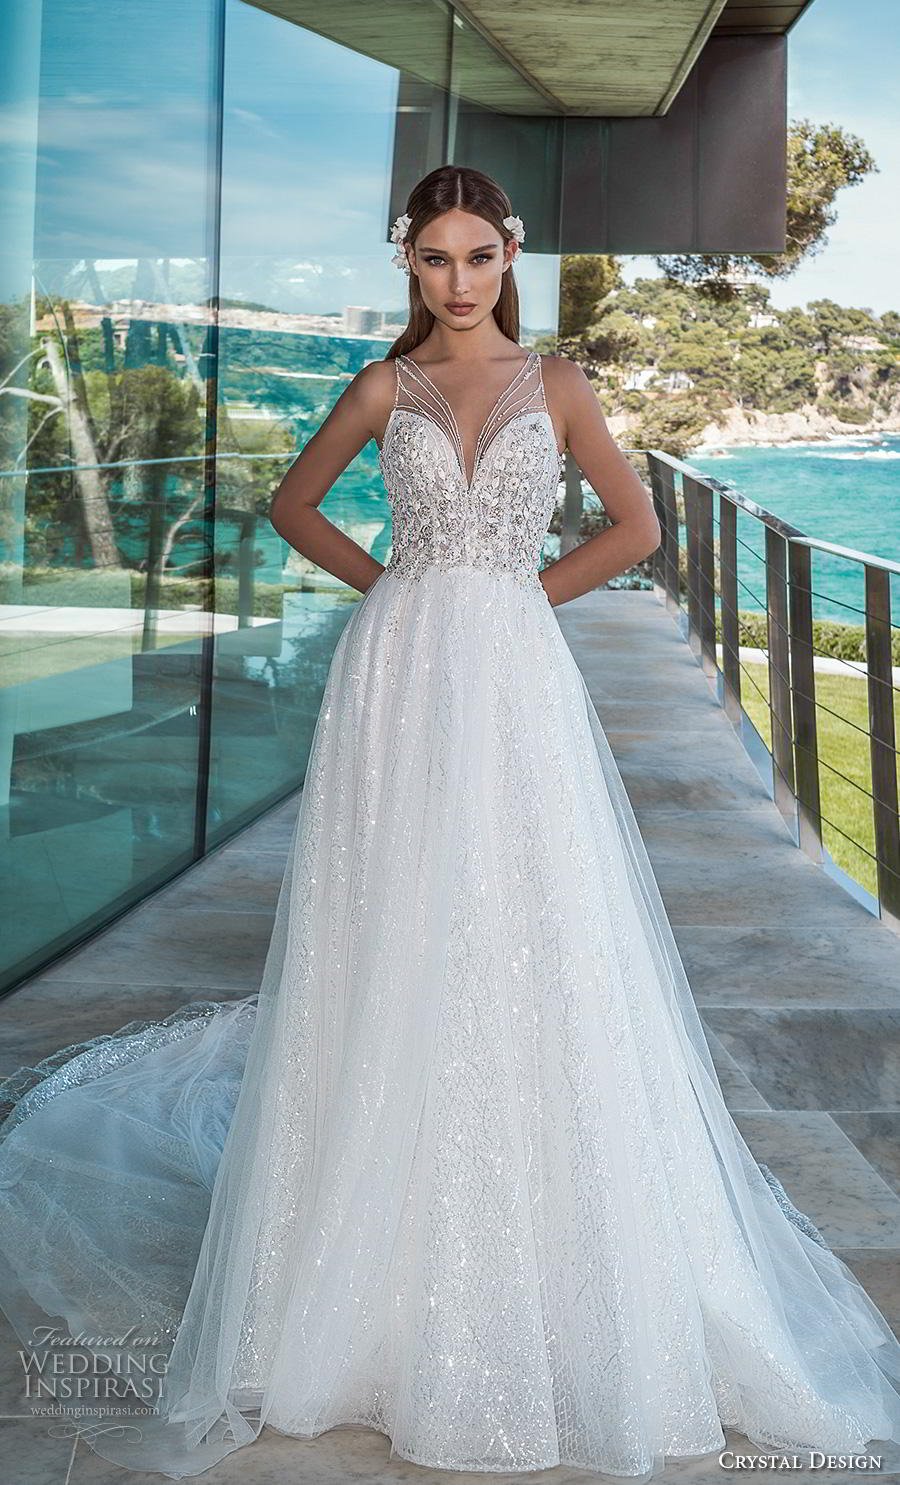 crystal design 2019 bridal sleeveless illusion v sweetheart neckline heavily embellished bodice romantic glamorous a  line wedding dress keyhole back chapel train (8) mv